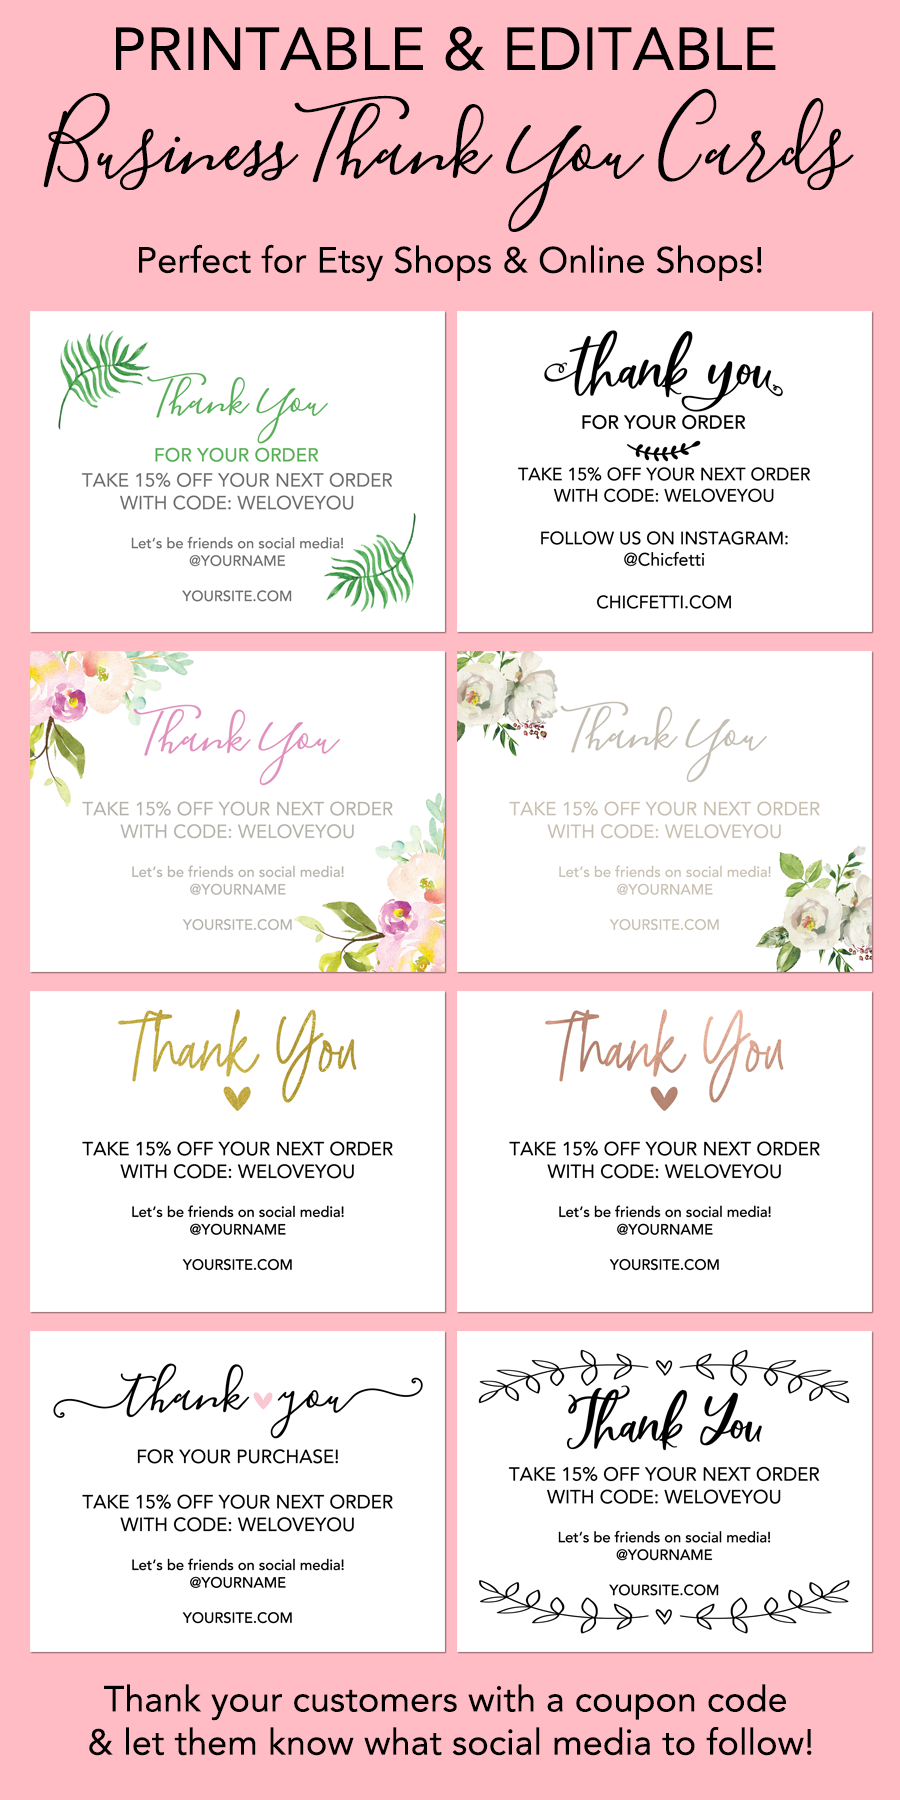 Printable Thank You Cards For Your Business Free Printable Business Cards Thank You Card Design Business Thank You Notes